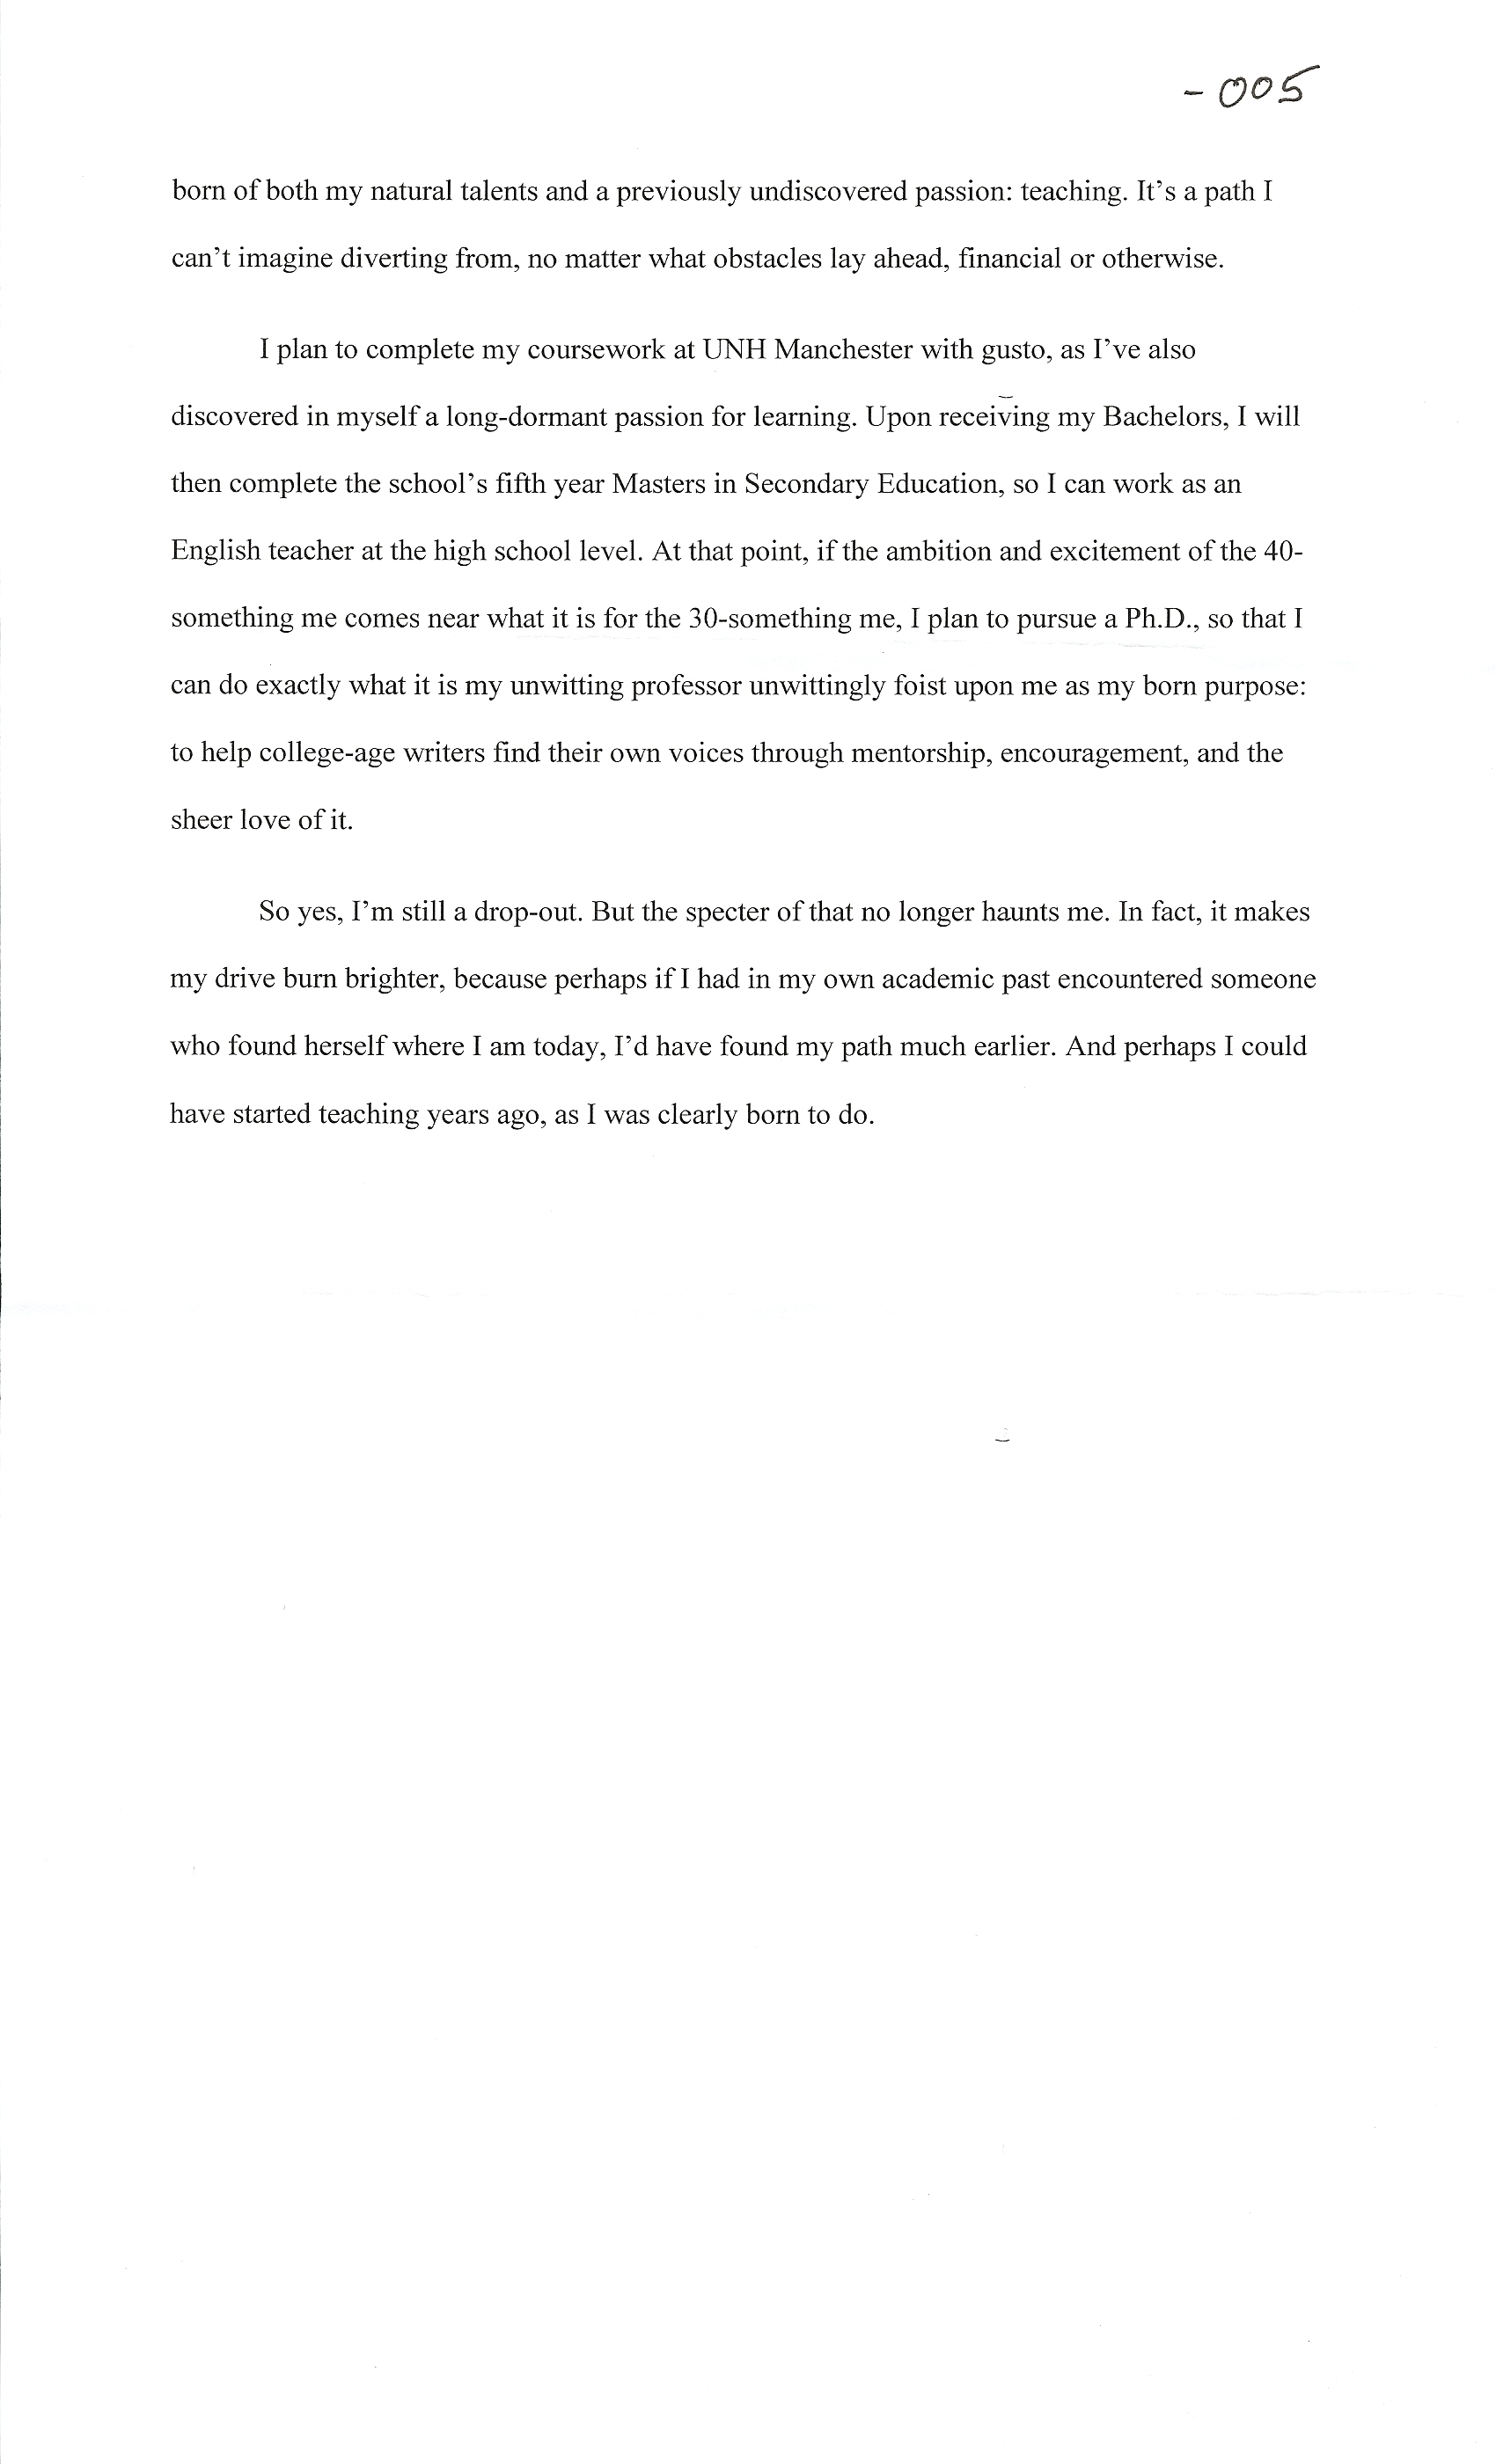 examples of persuasive essays for high school high school speech  persuasive essays examples for high school illustration essay persuasive  essay thesis essay paper persuasive essay samples